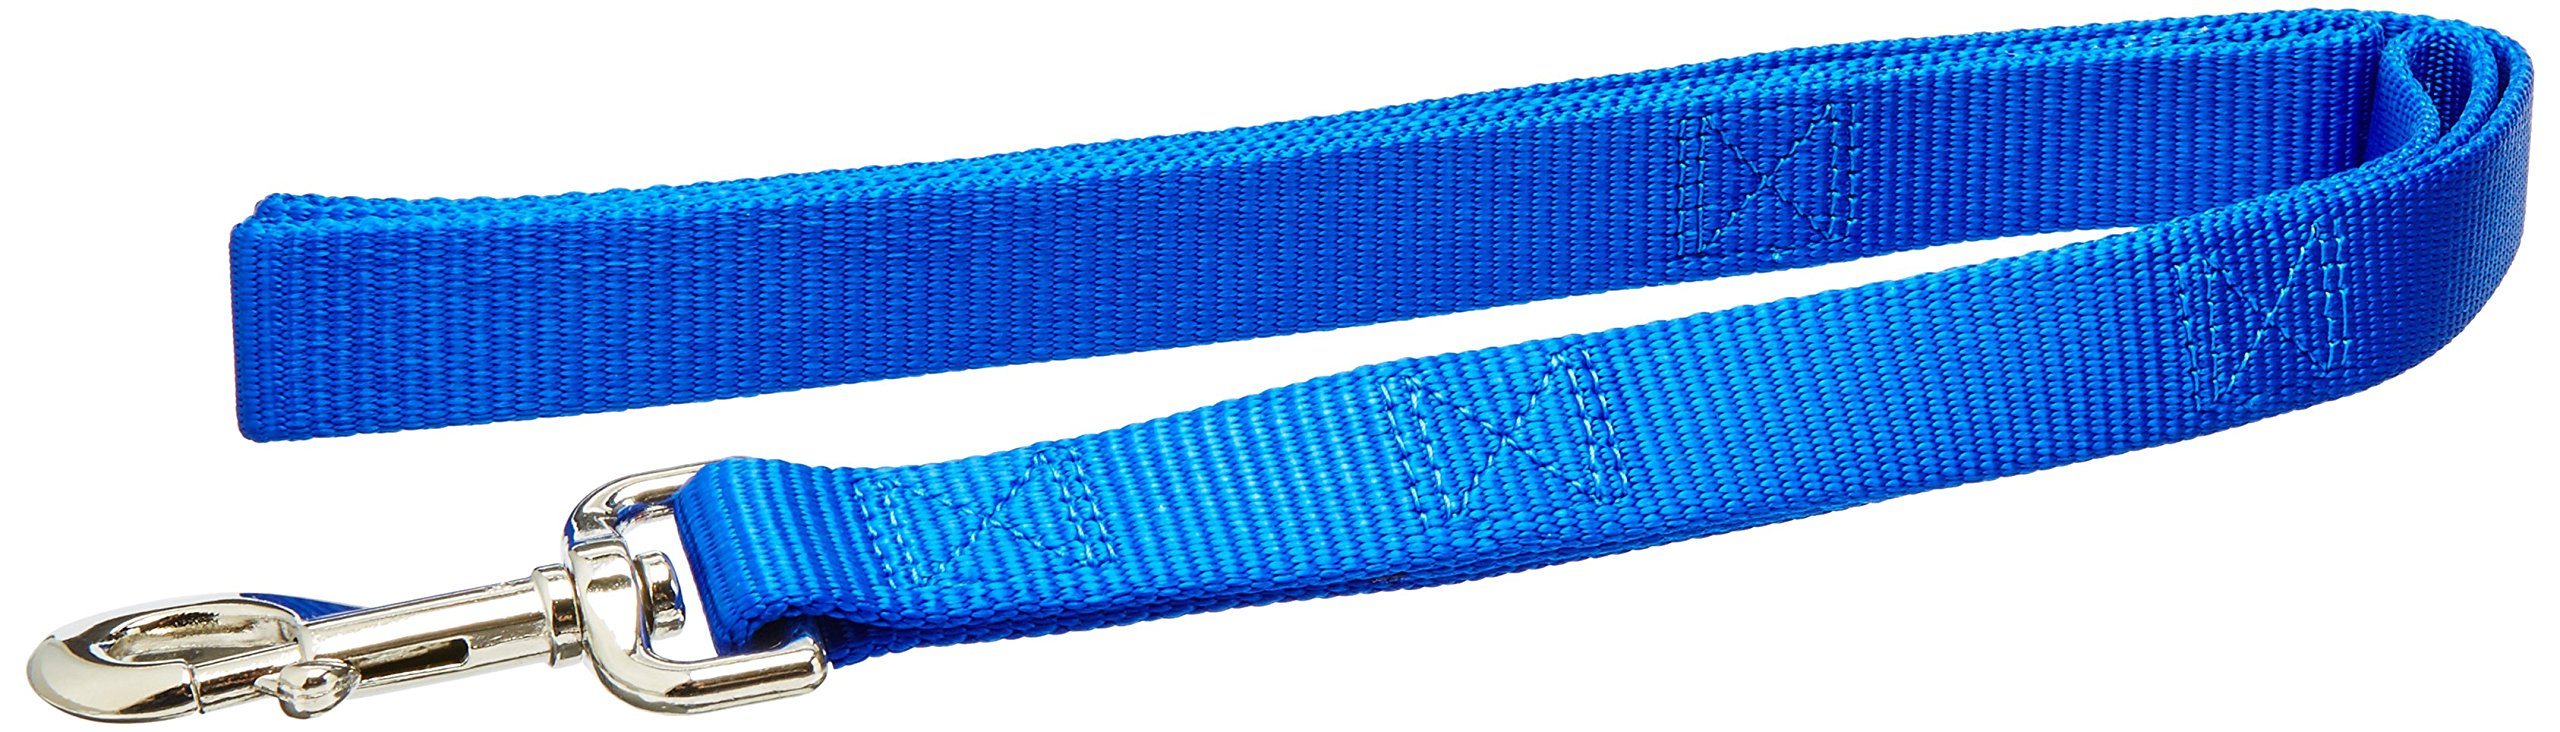 Coastal Pet Products DCP904HBLU Nylon Loops Double Handle Dog Leash, 1-Inch by 4-Feet, Blue